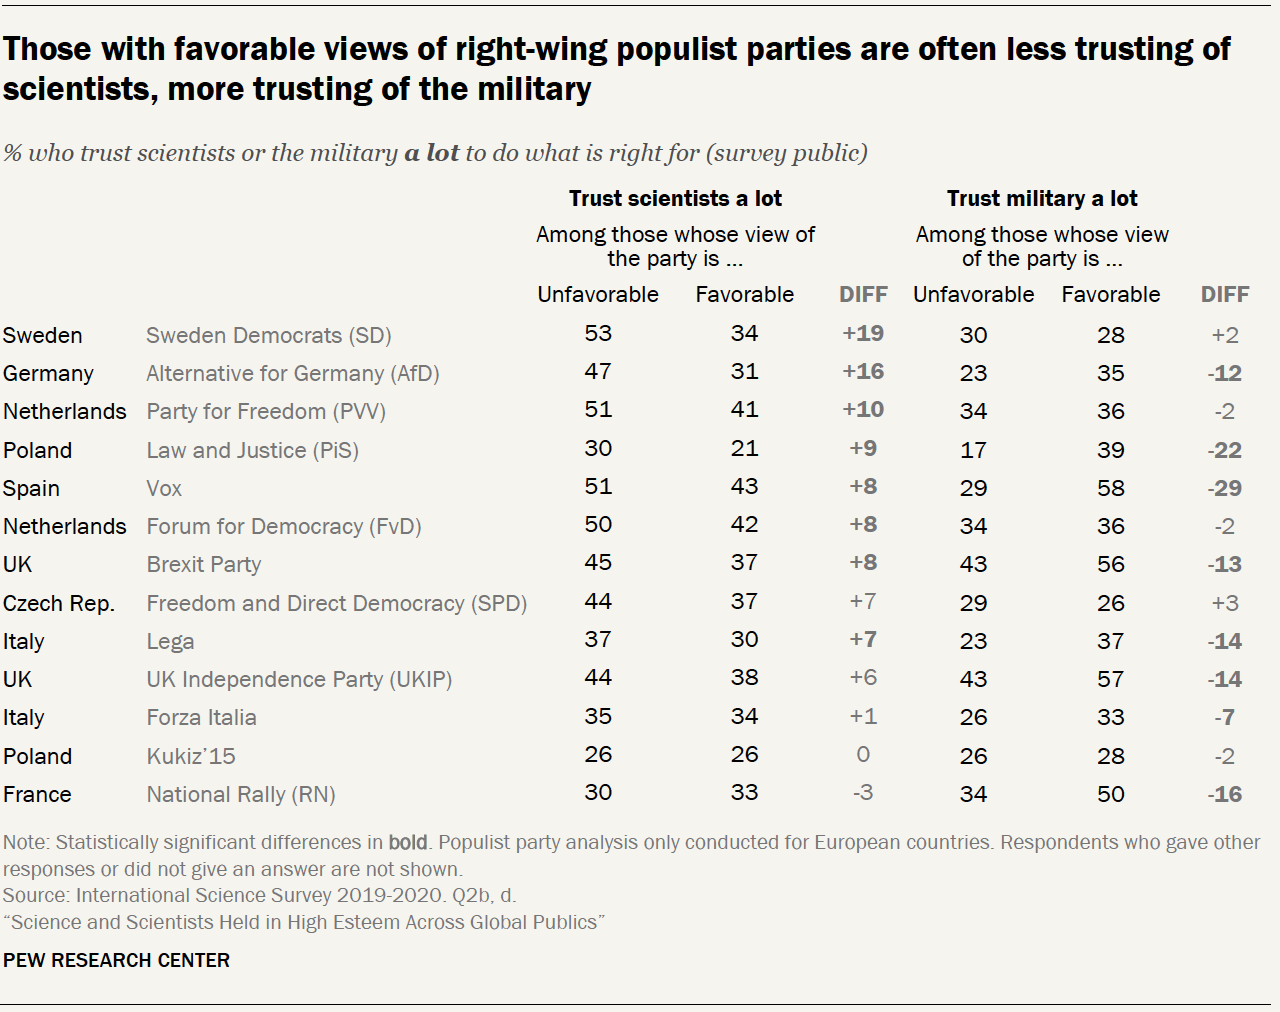 Chart shows those with favorable views of right-wing populist parties are often less trusting of scientists, more trusting of the military